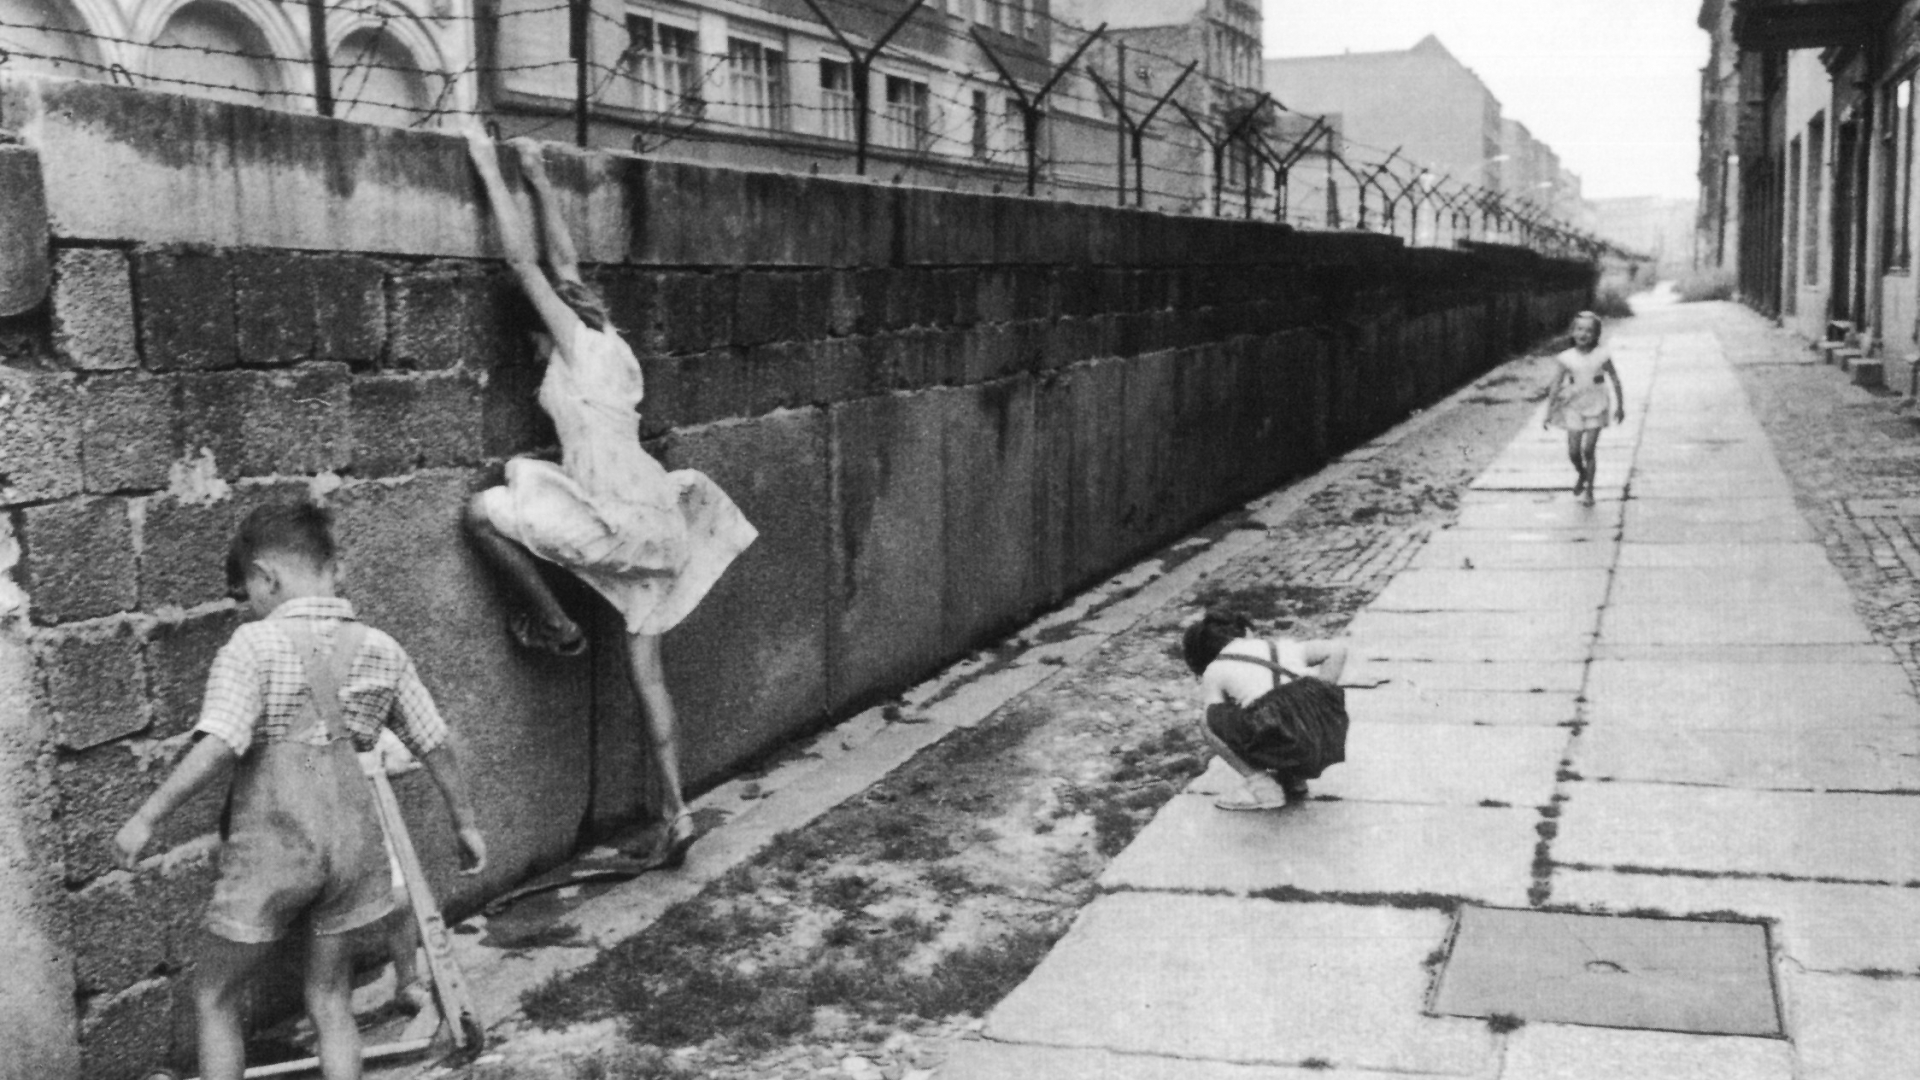 download Henri Cartier Bresson Photos Berlin Wall 1962 p139 1920x1080